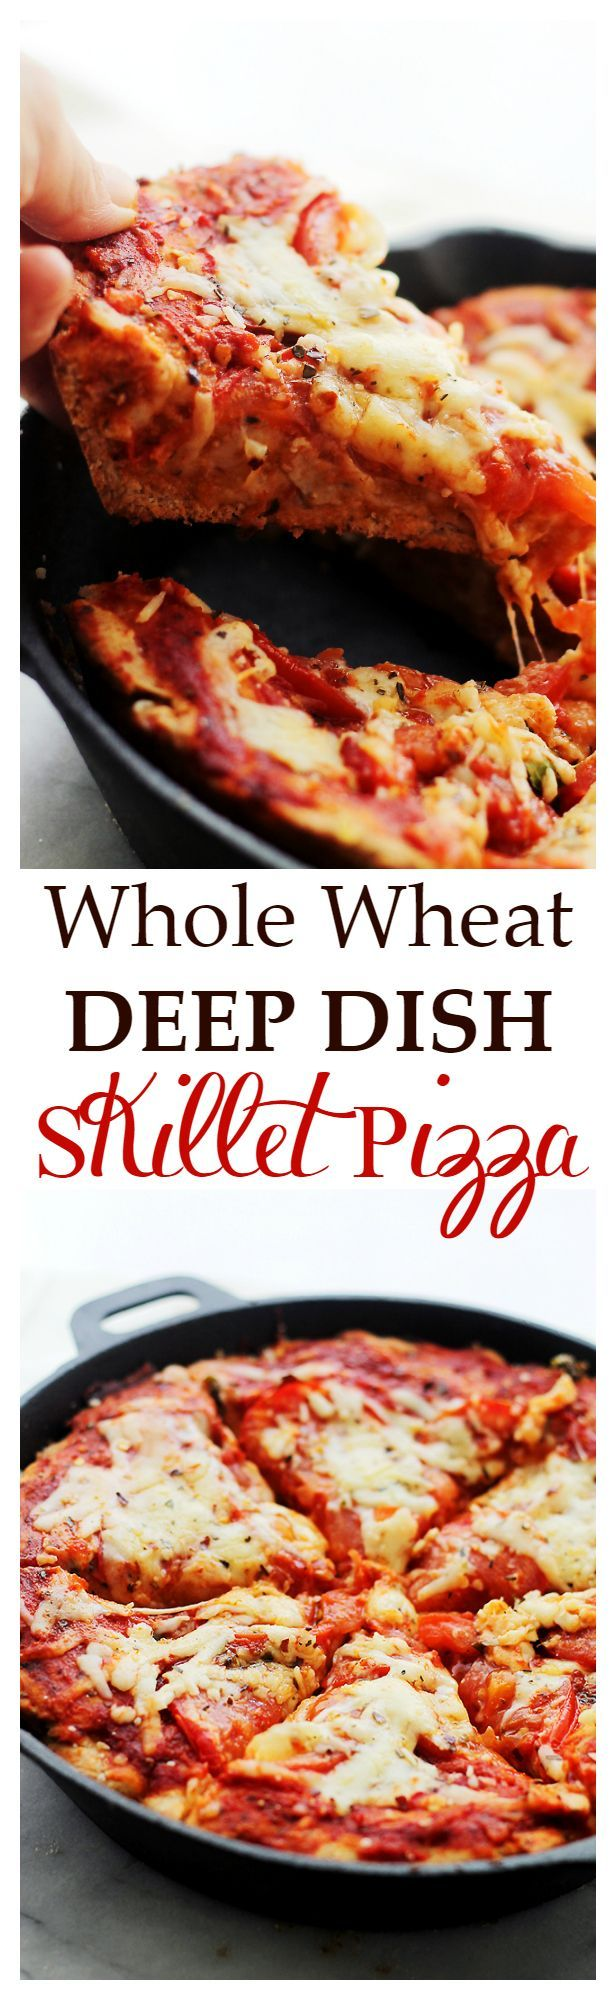 Whole Wheat Deep Dish Skillet Pizza - Soft, flavorful, homemade, MILE ...